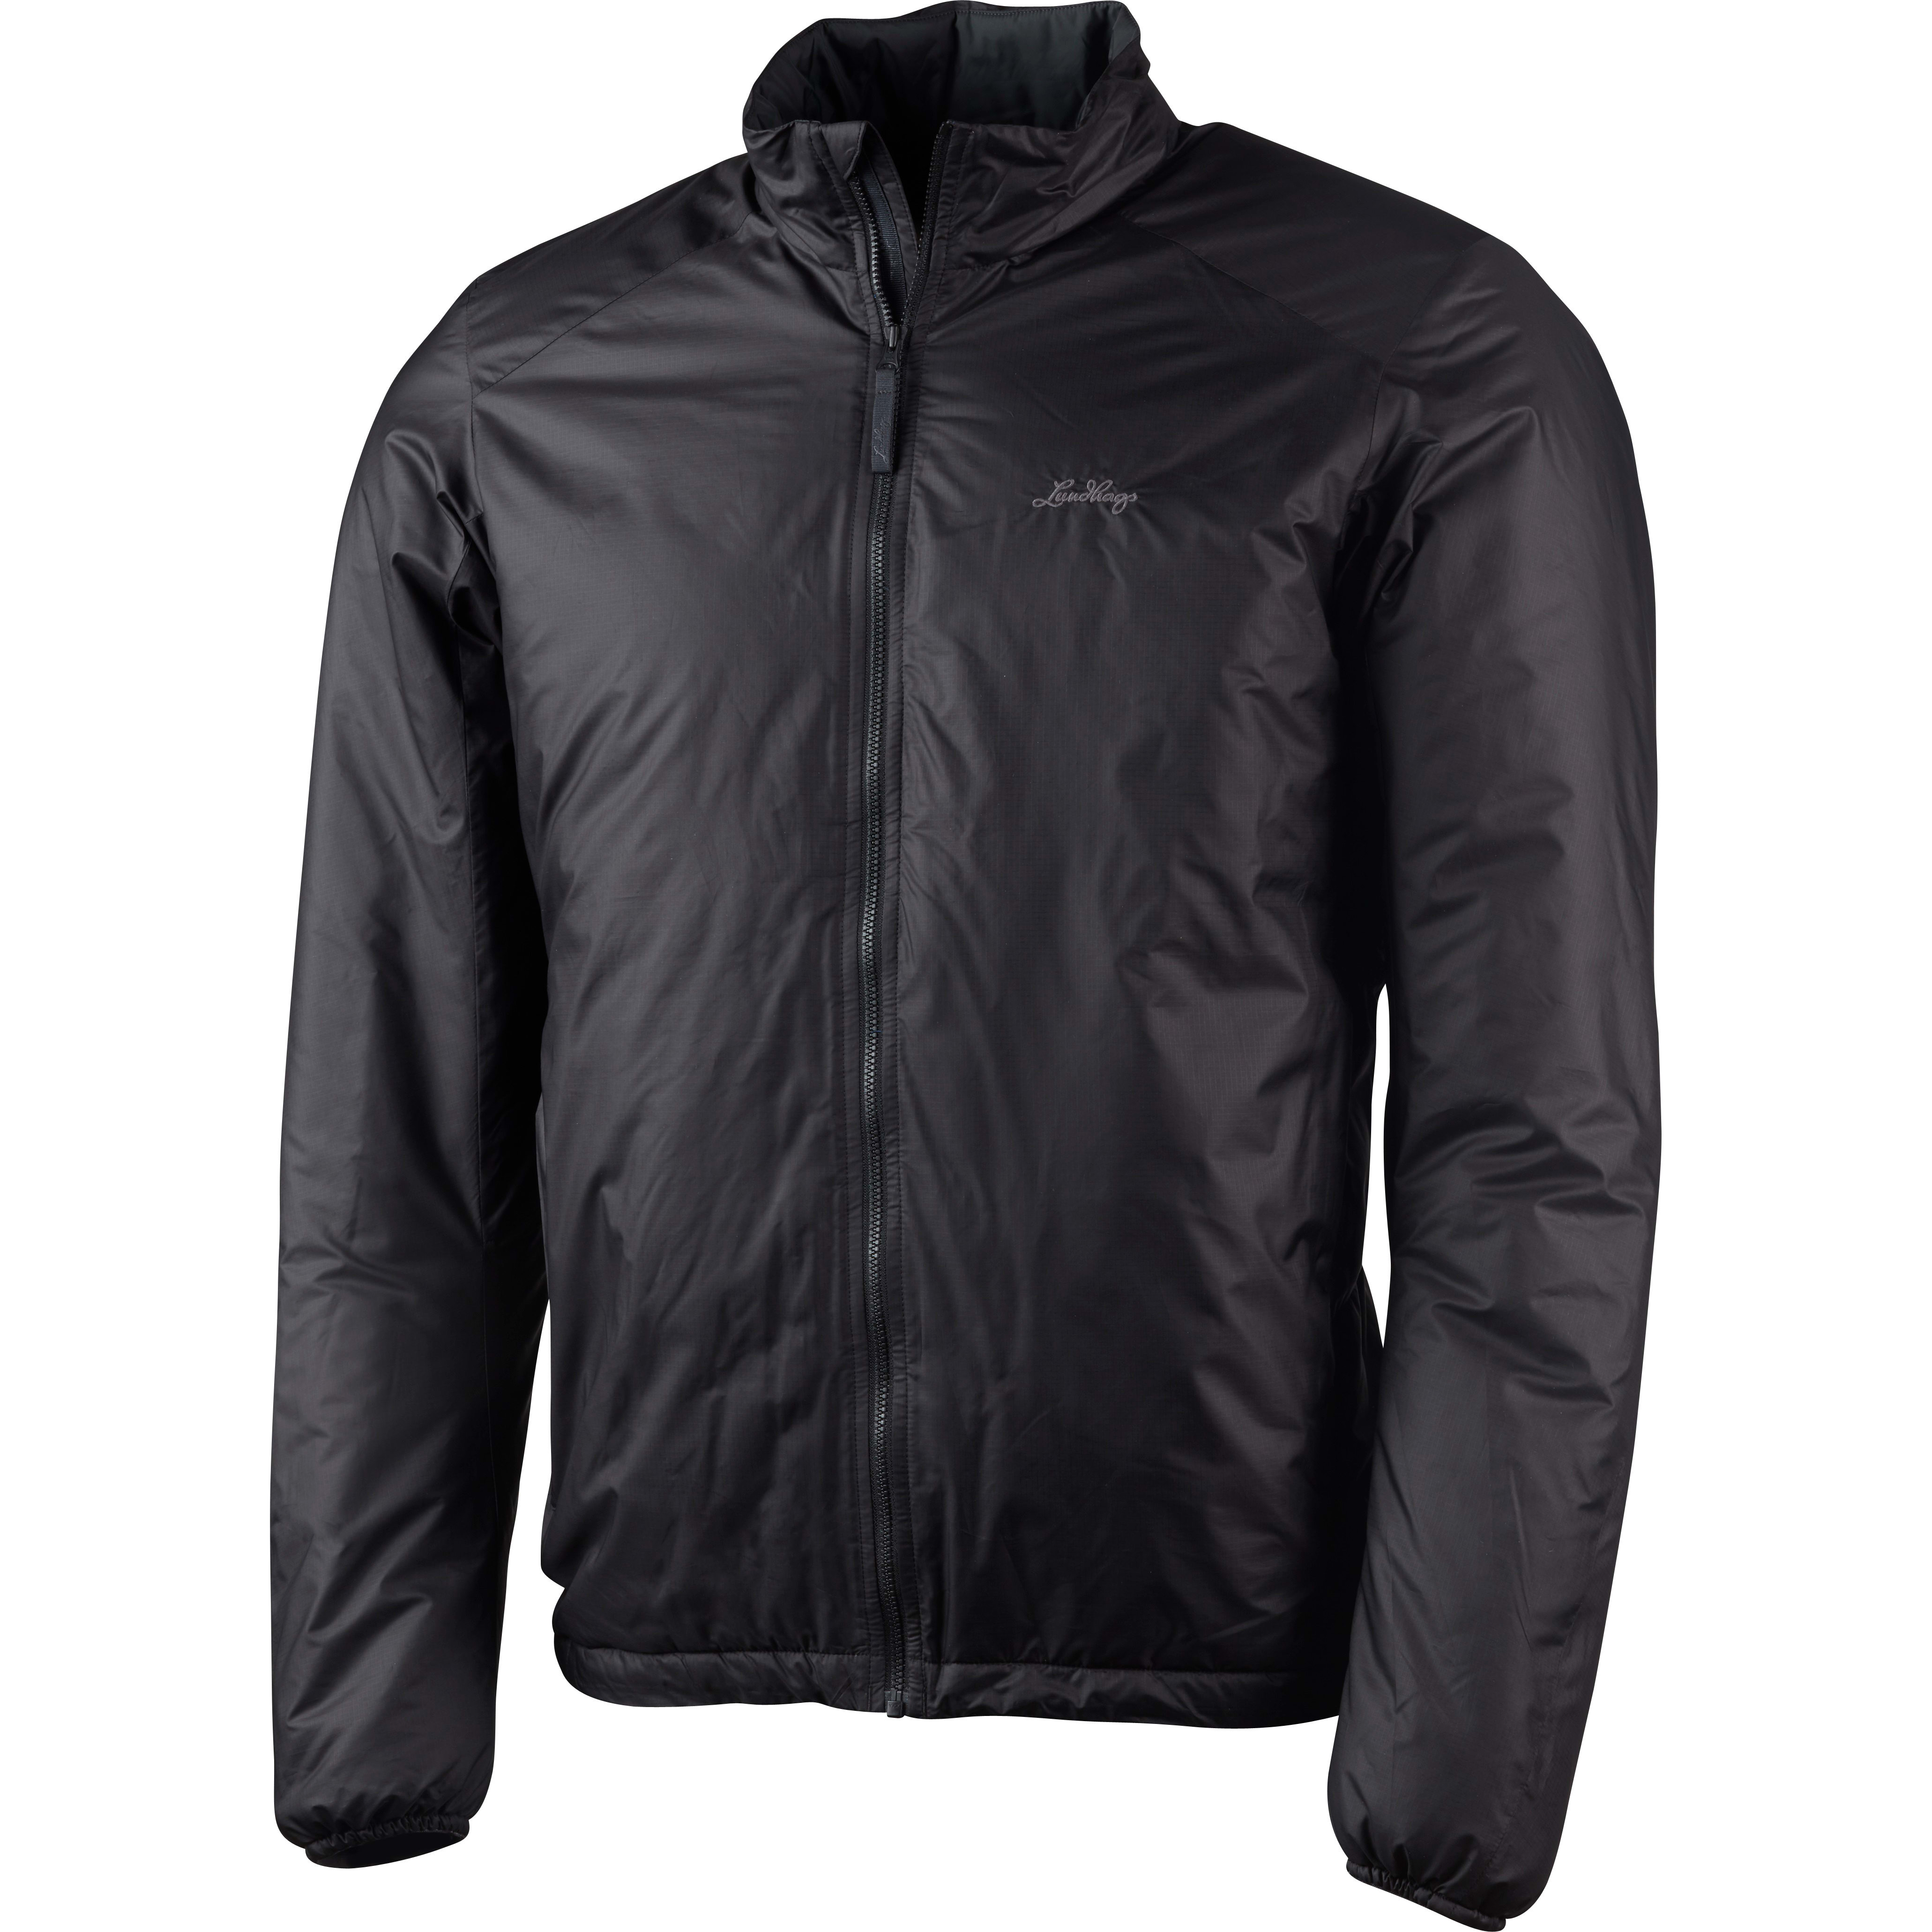 Buy Lundhags Viik Men s Jacket from Outnorth 66cb2170ea